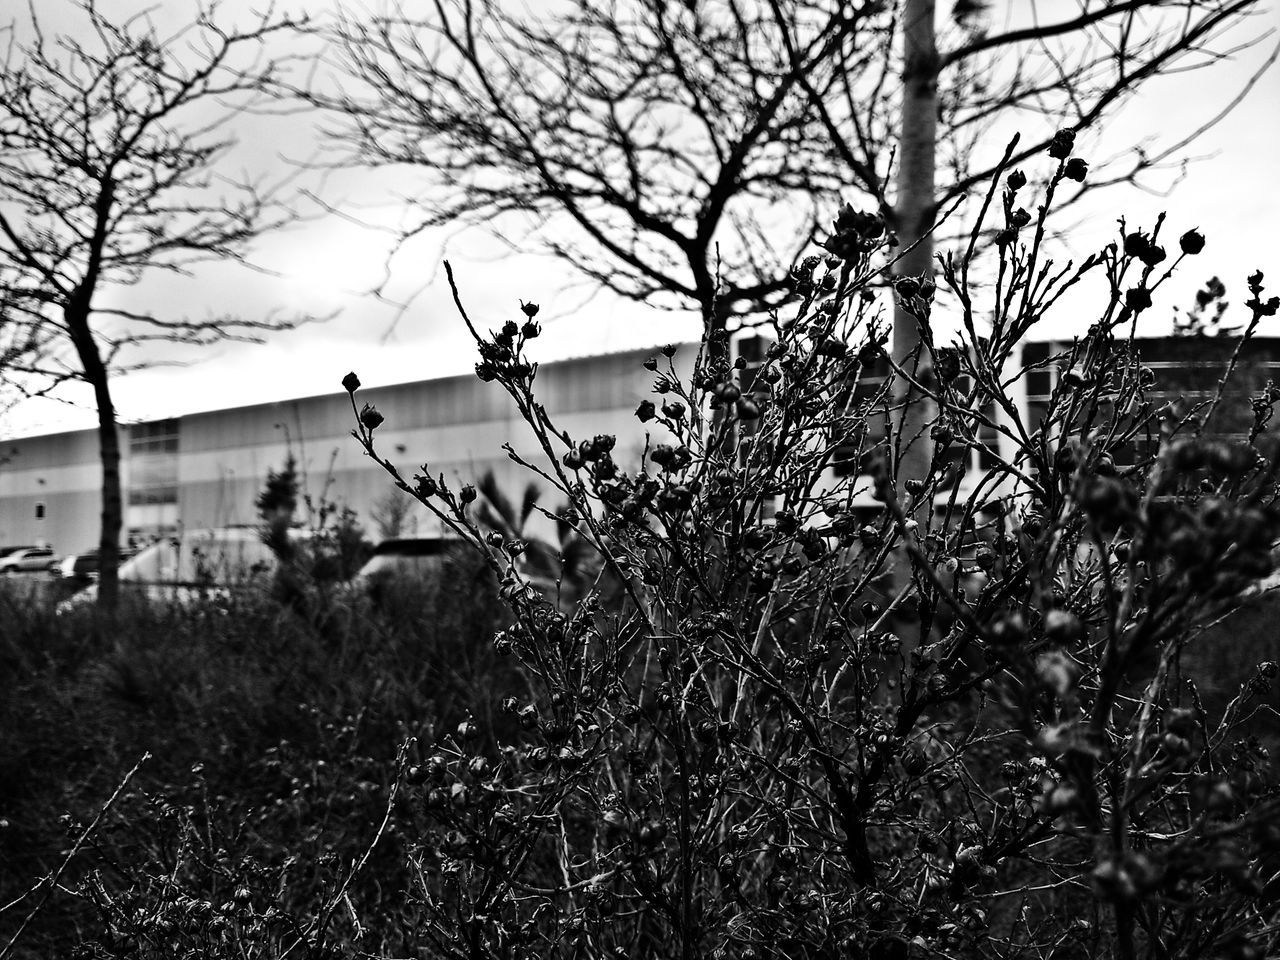 Learn And Shoot Black And White Taking Photos Winter Nature Outside Shrubbery Black And White Nature Photography Black And White Collection  Black And White Photography Ruleofthirds Rule Of Thirds Wintertime Canada Shrubs